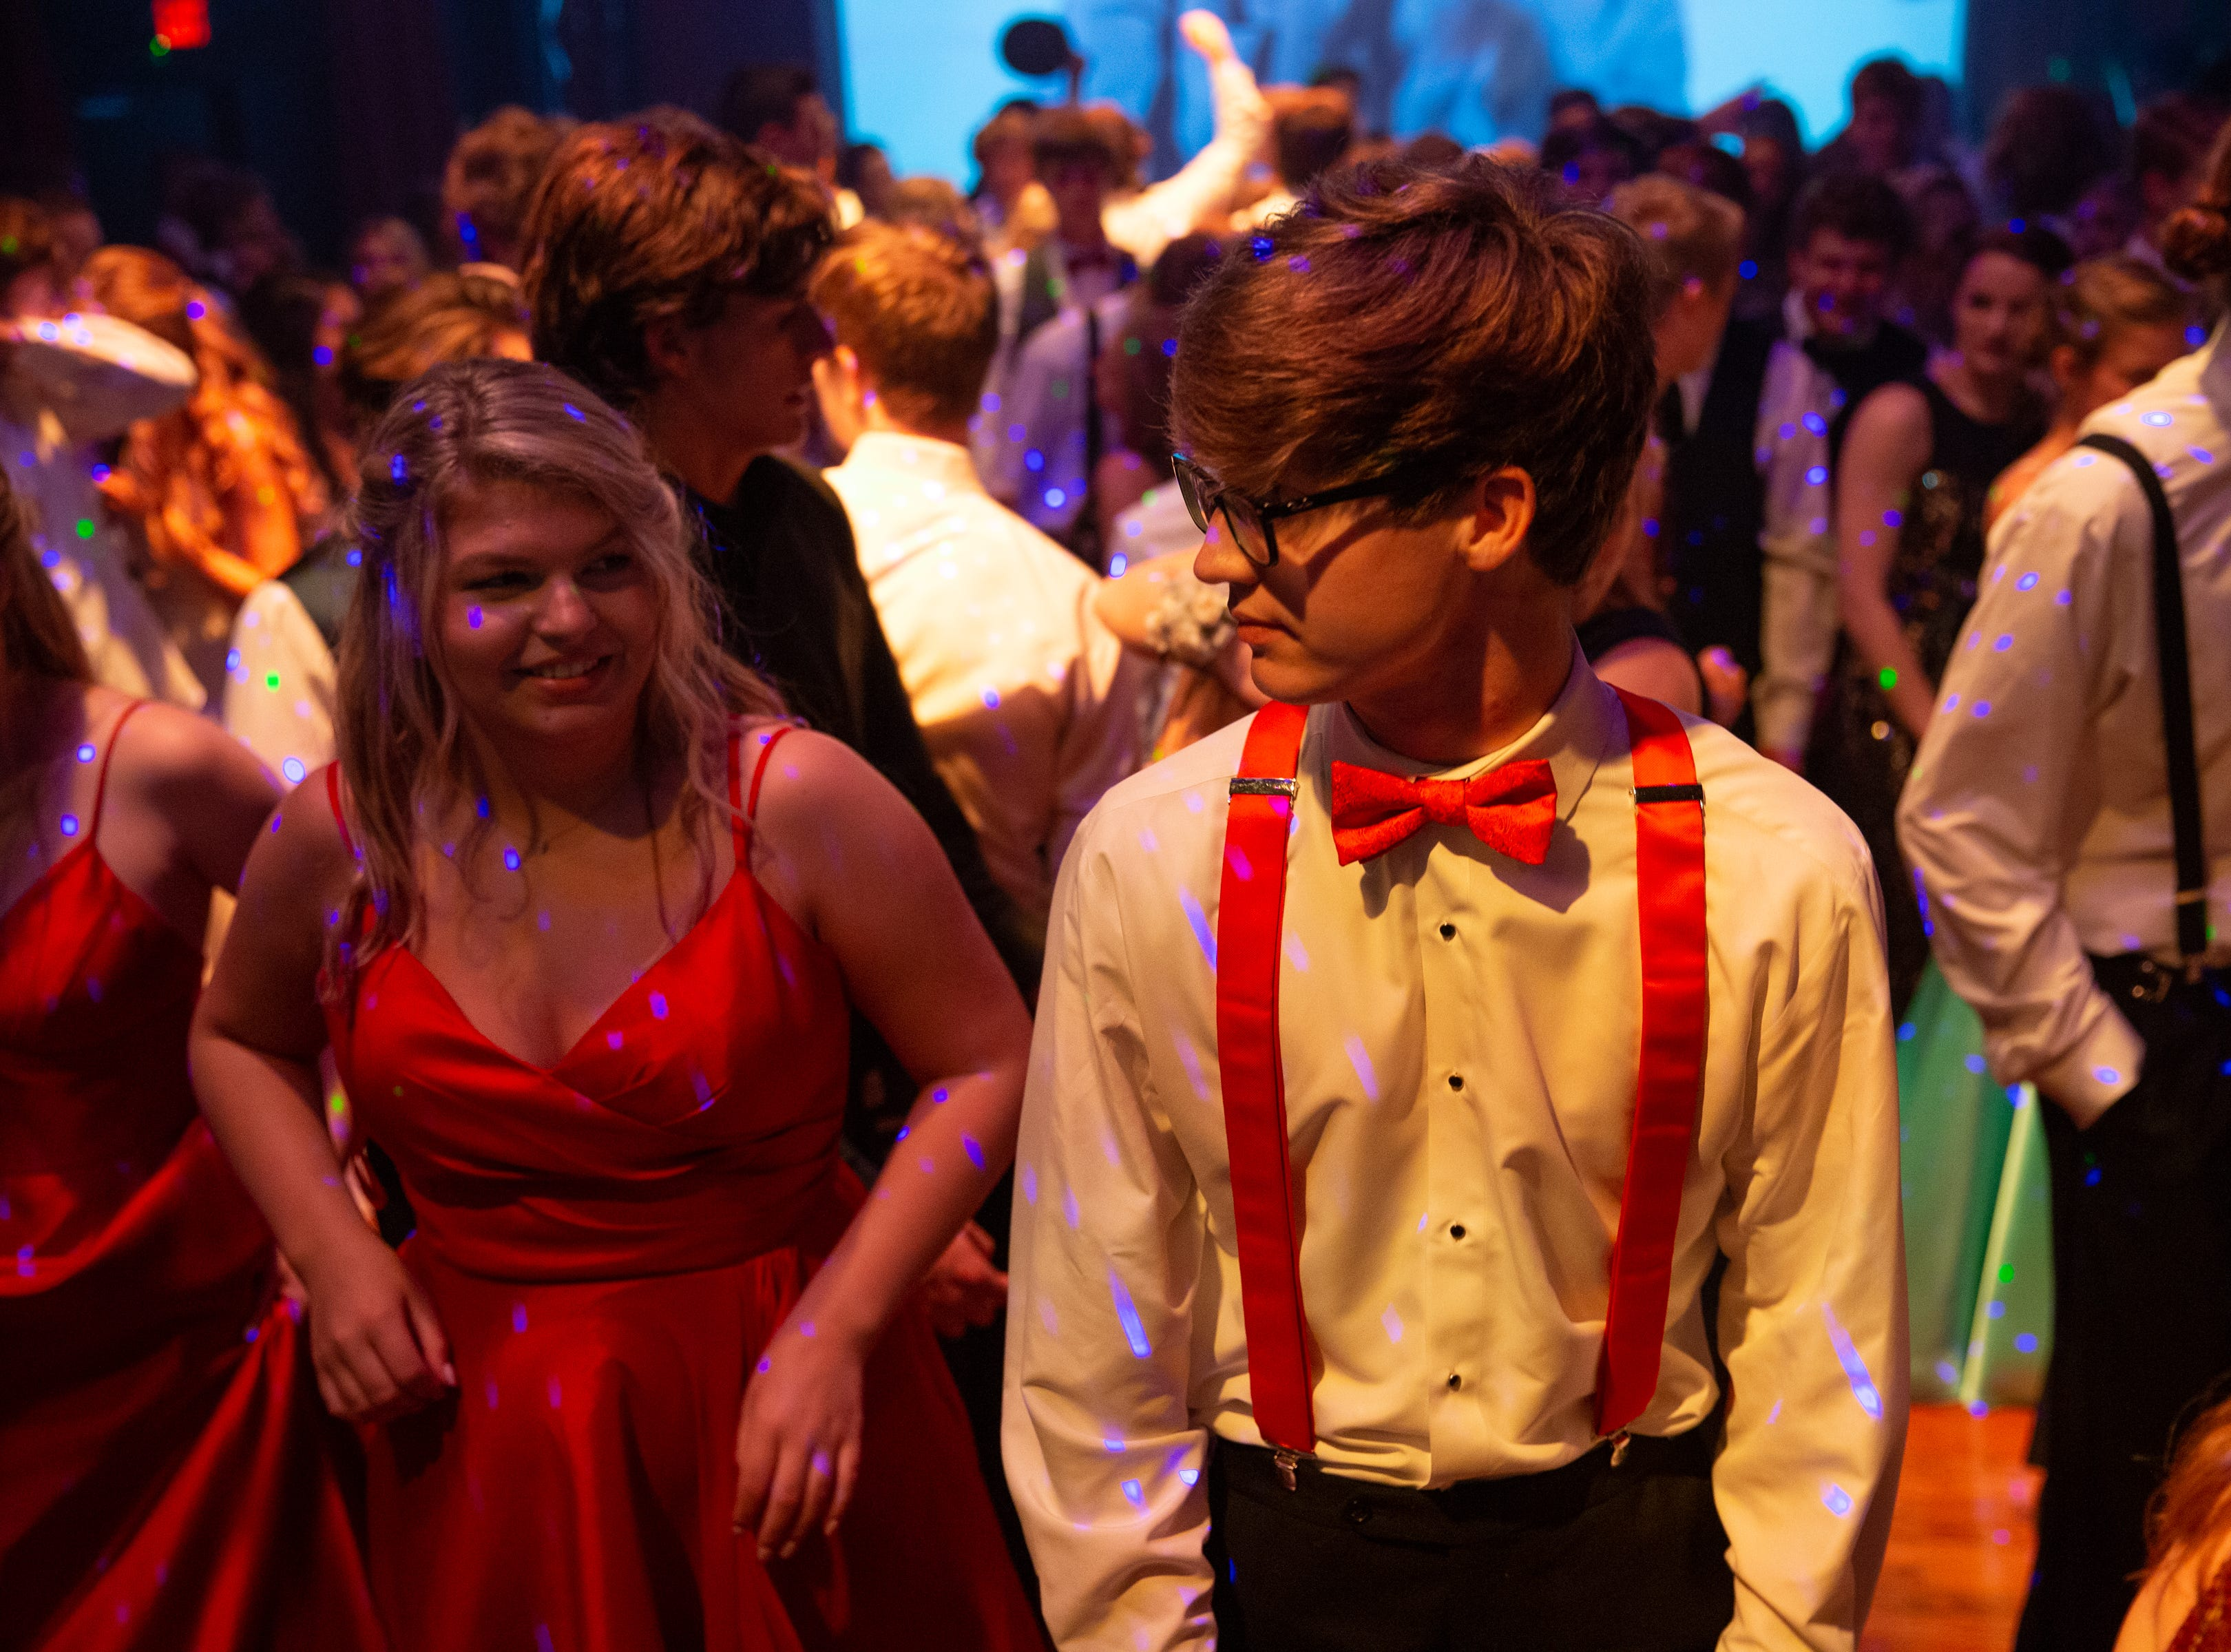 Scenes from Christian Academy of Knoxville's prom at the Capitol Theatre in Maryville Saturday, April 13, 2019.